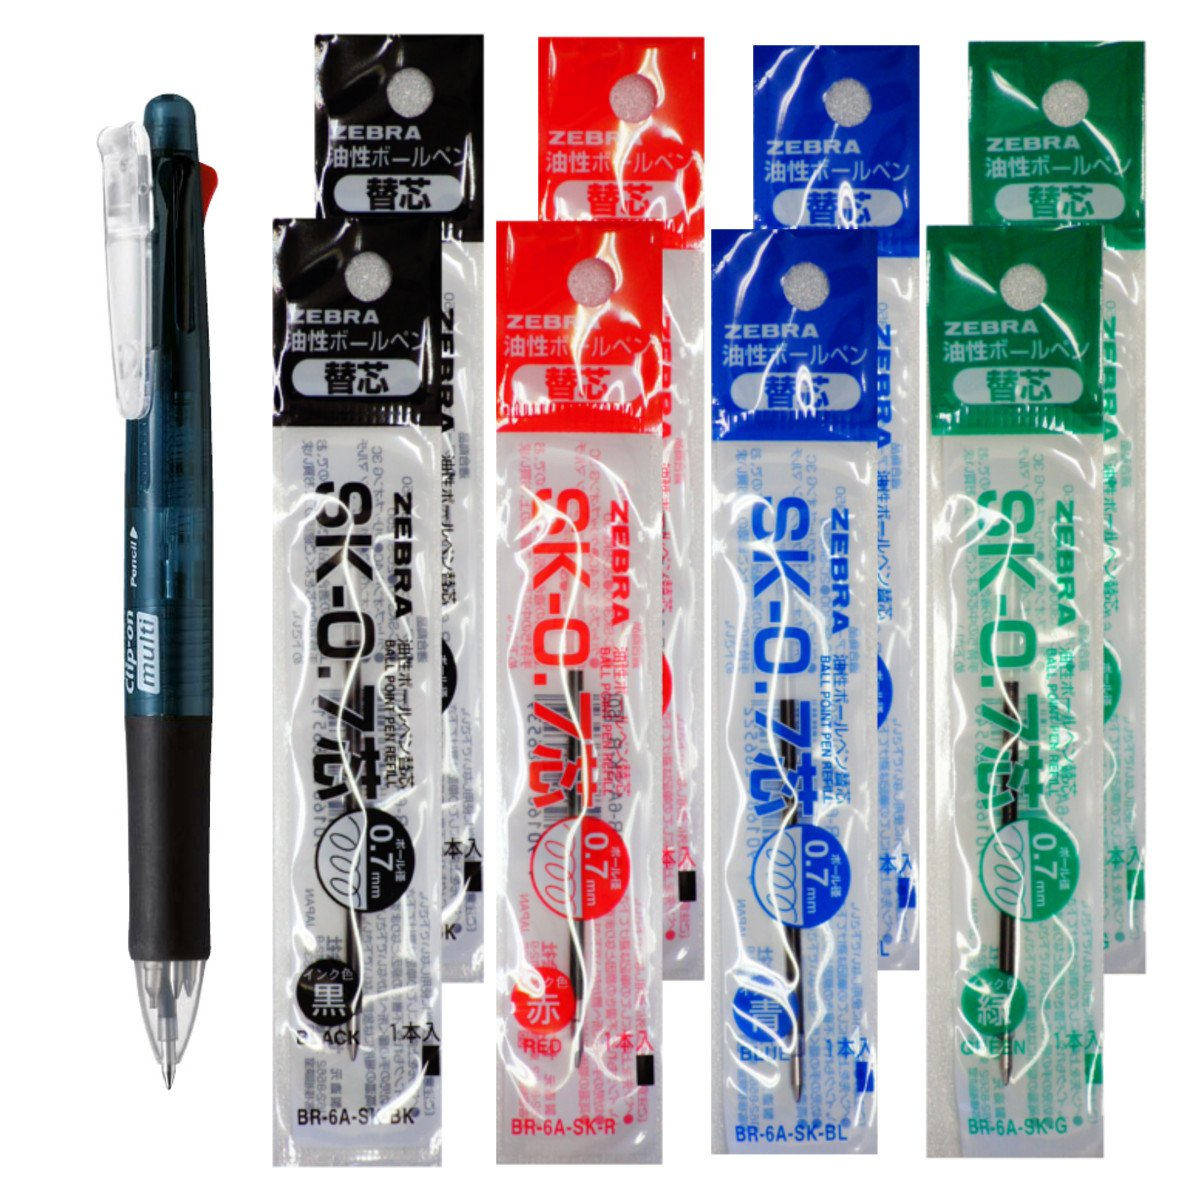 Zebra B4SA-1 Clip-on multi 0.7mm Multifunctional Pen, Black Body & 4 Color(Black/Blue/Red/Green) Refills 8 Total Value Set